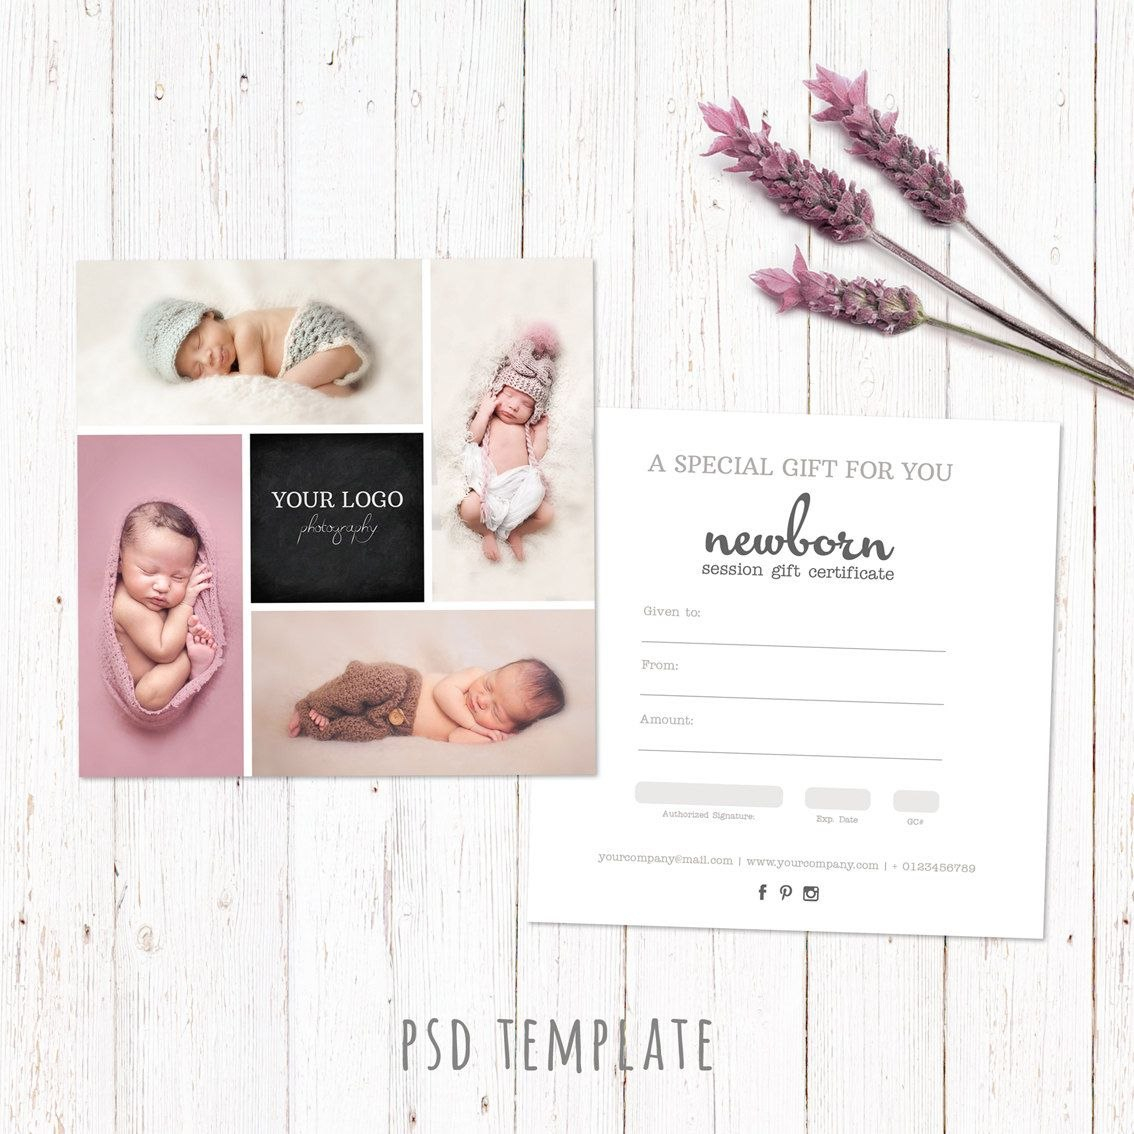 Gift Certificate Template Newborn Session Photography Gift Card Pertaining To Photoshoot Gift Certificate Template